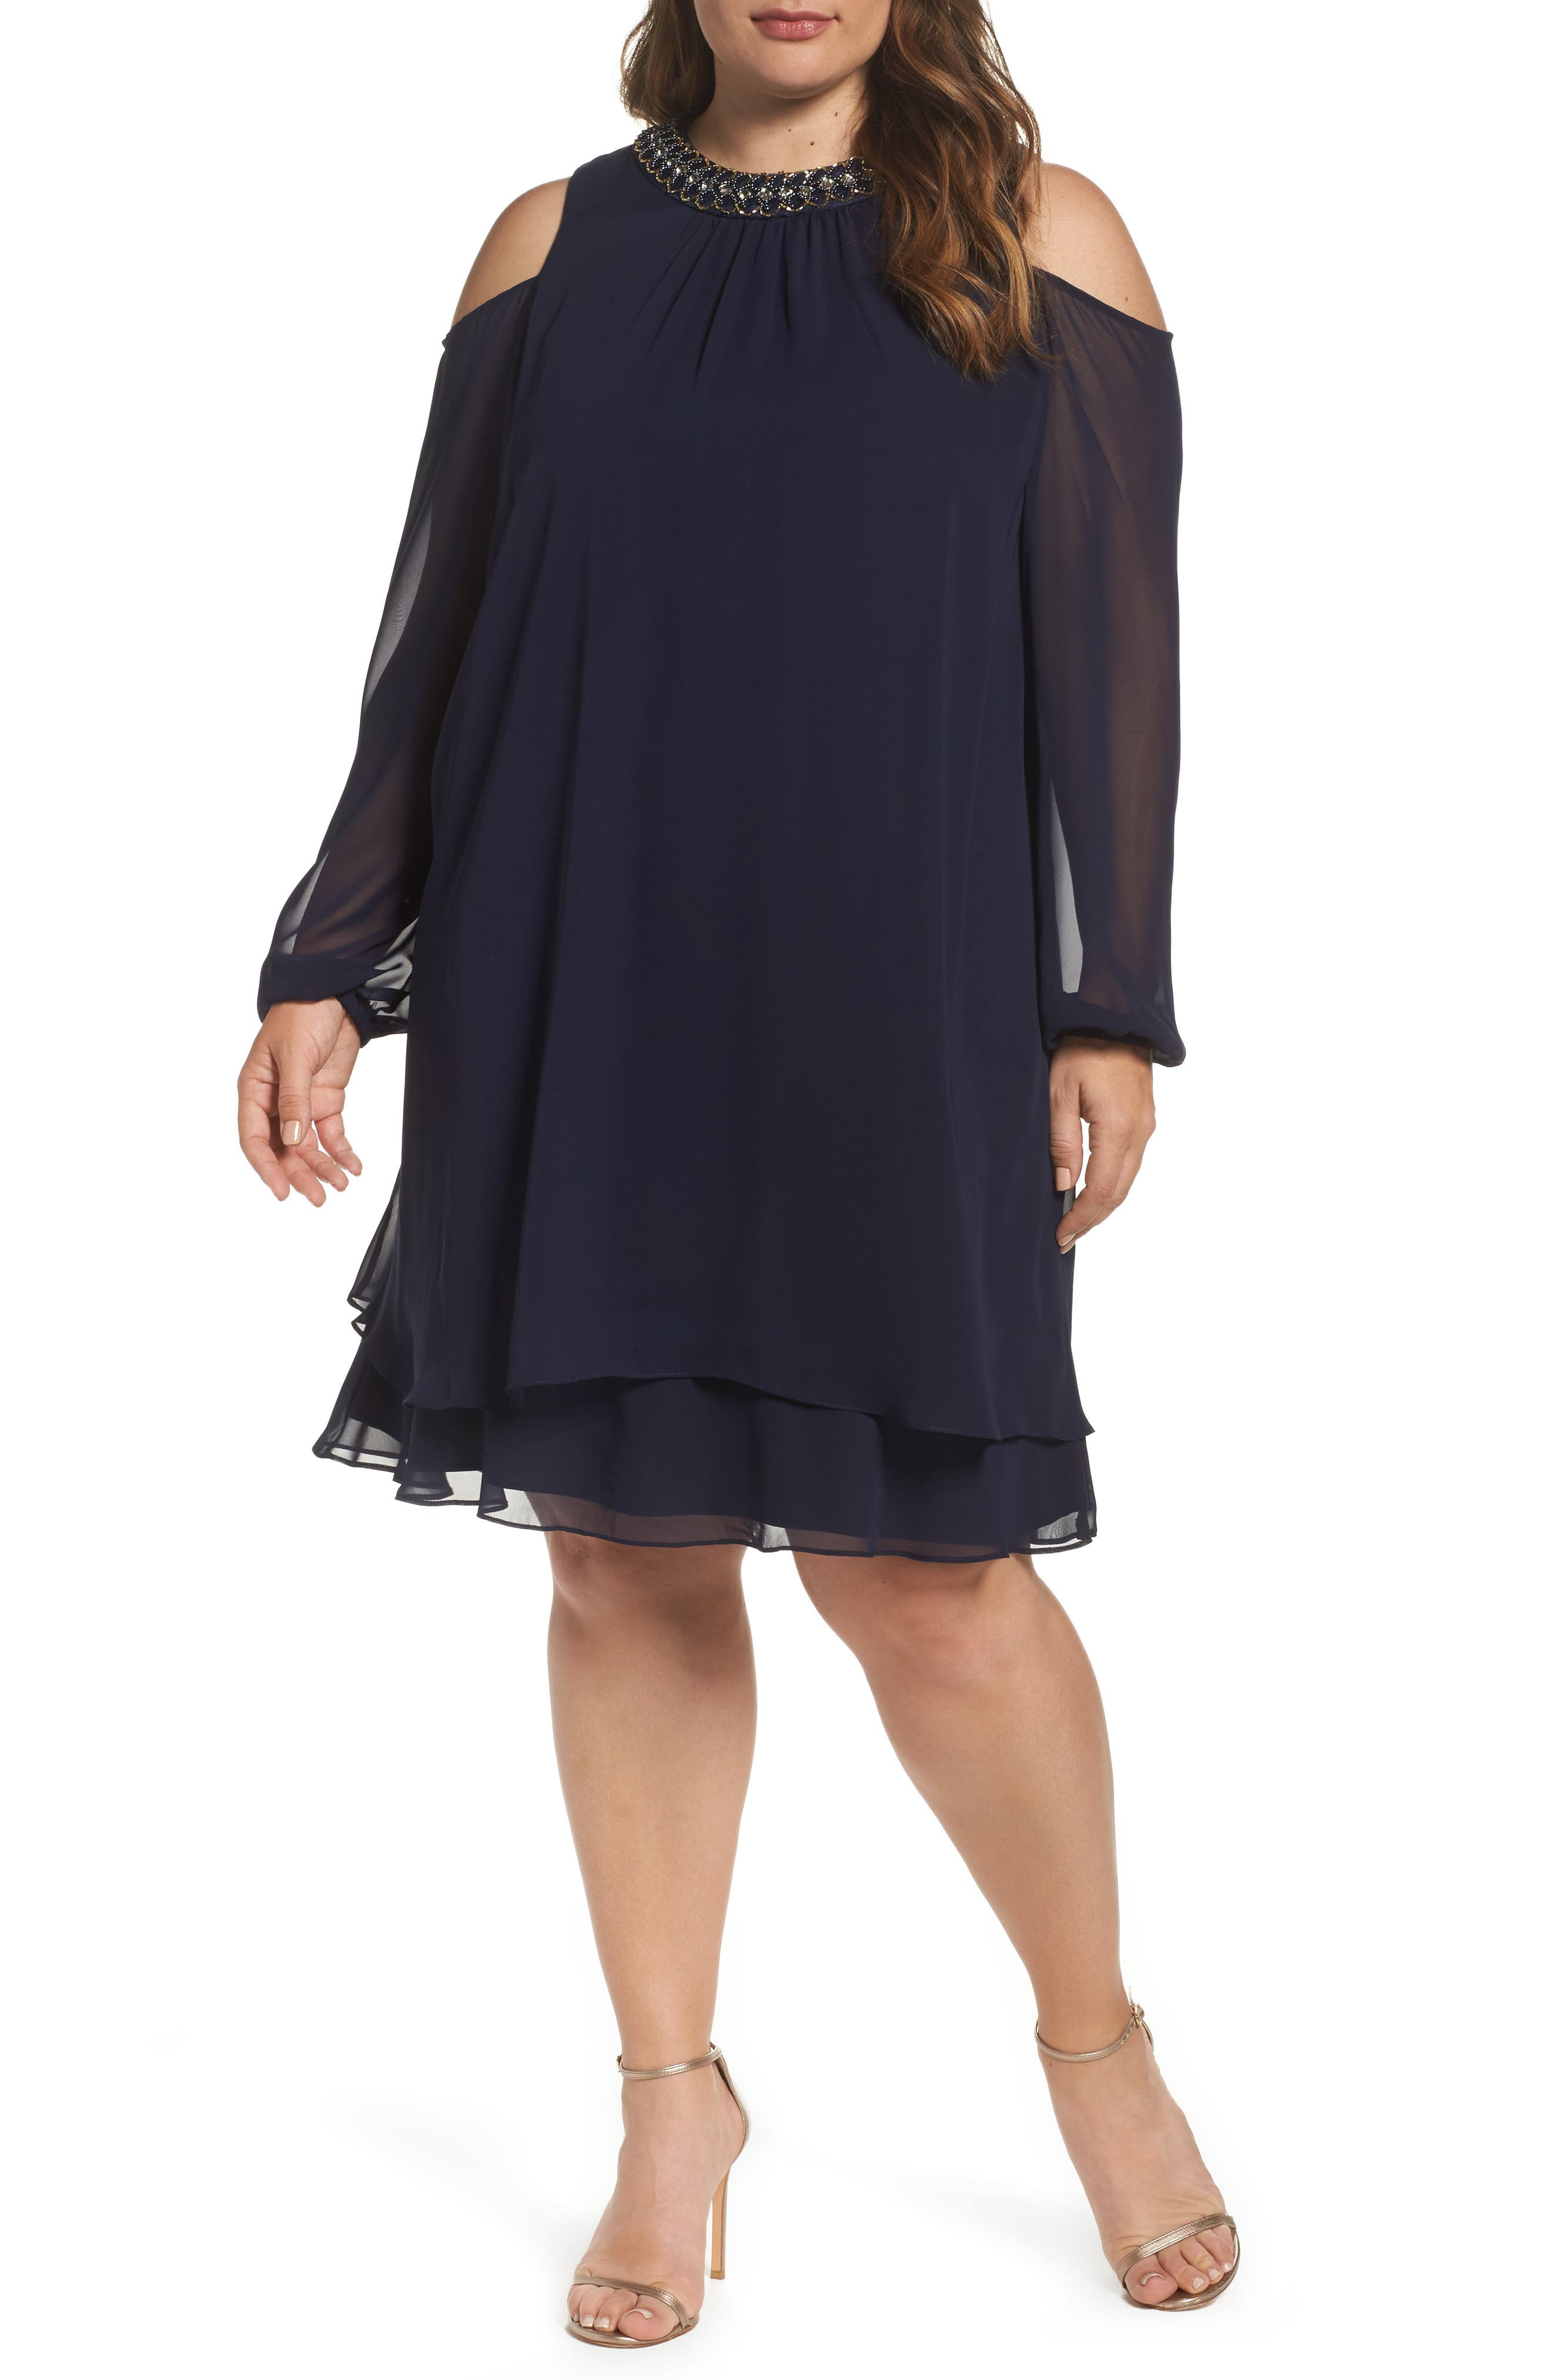 Alternate Image 1 Selected - Xscape Embellished Cold Shoulder Shift Dress (Plus Size)